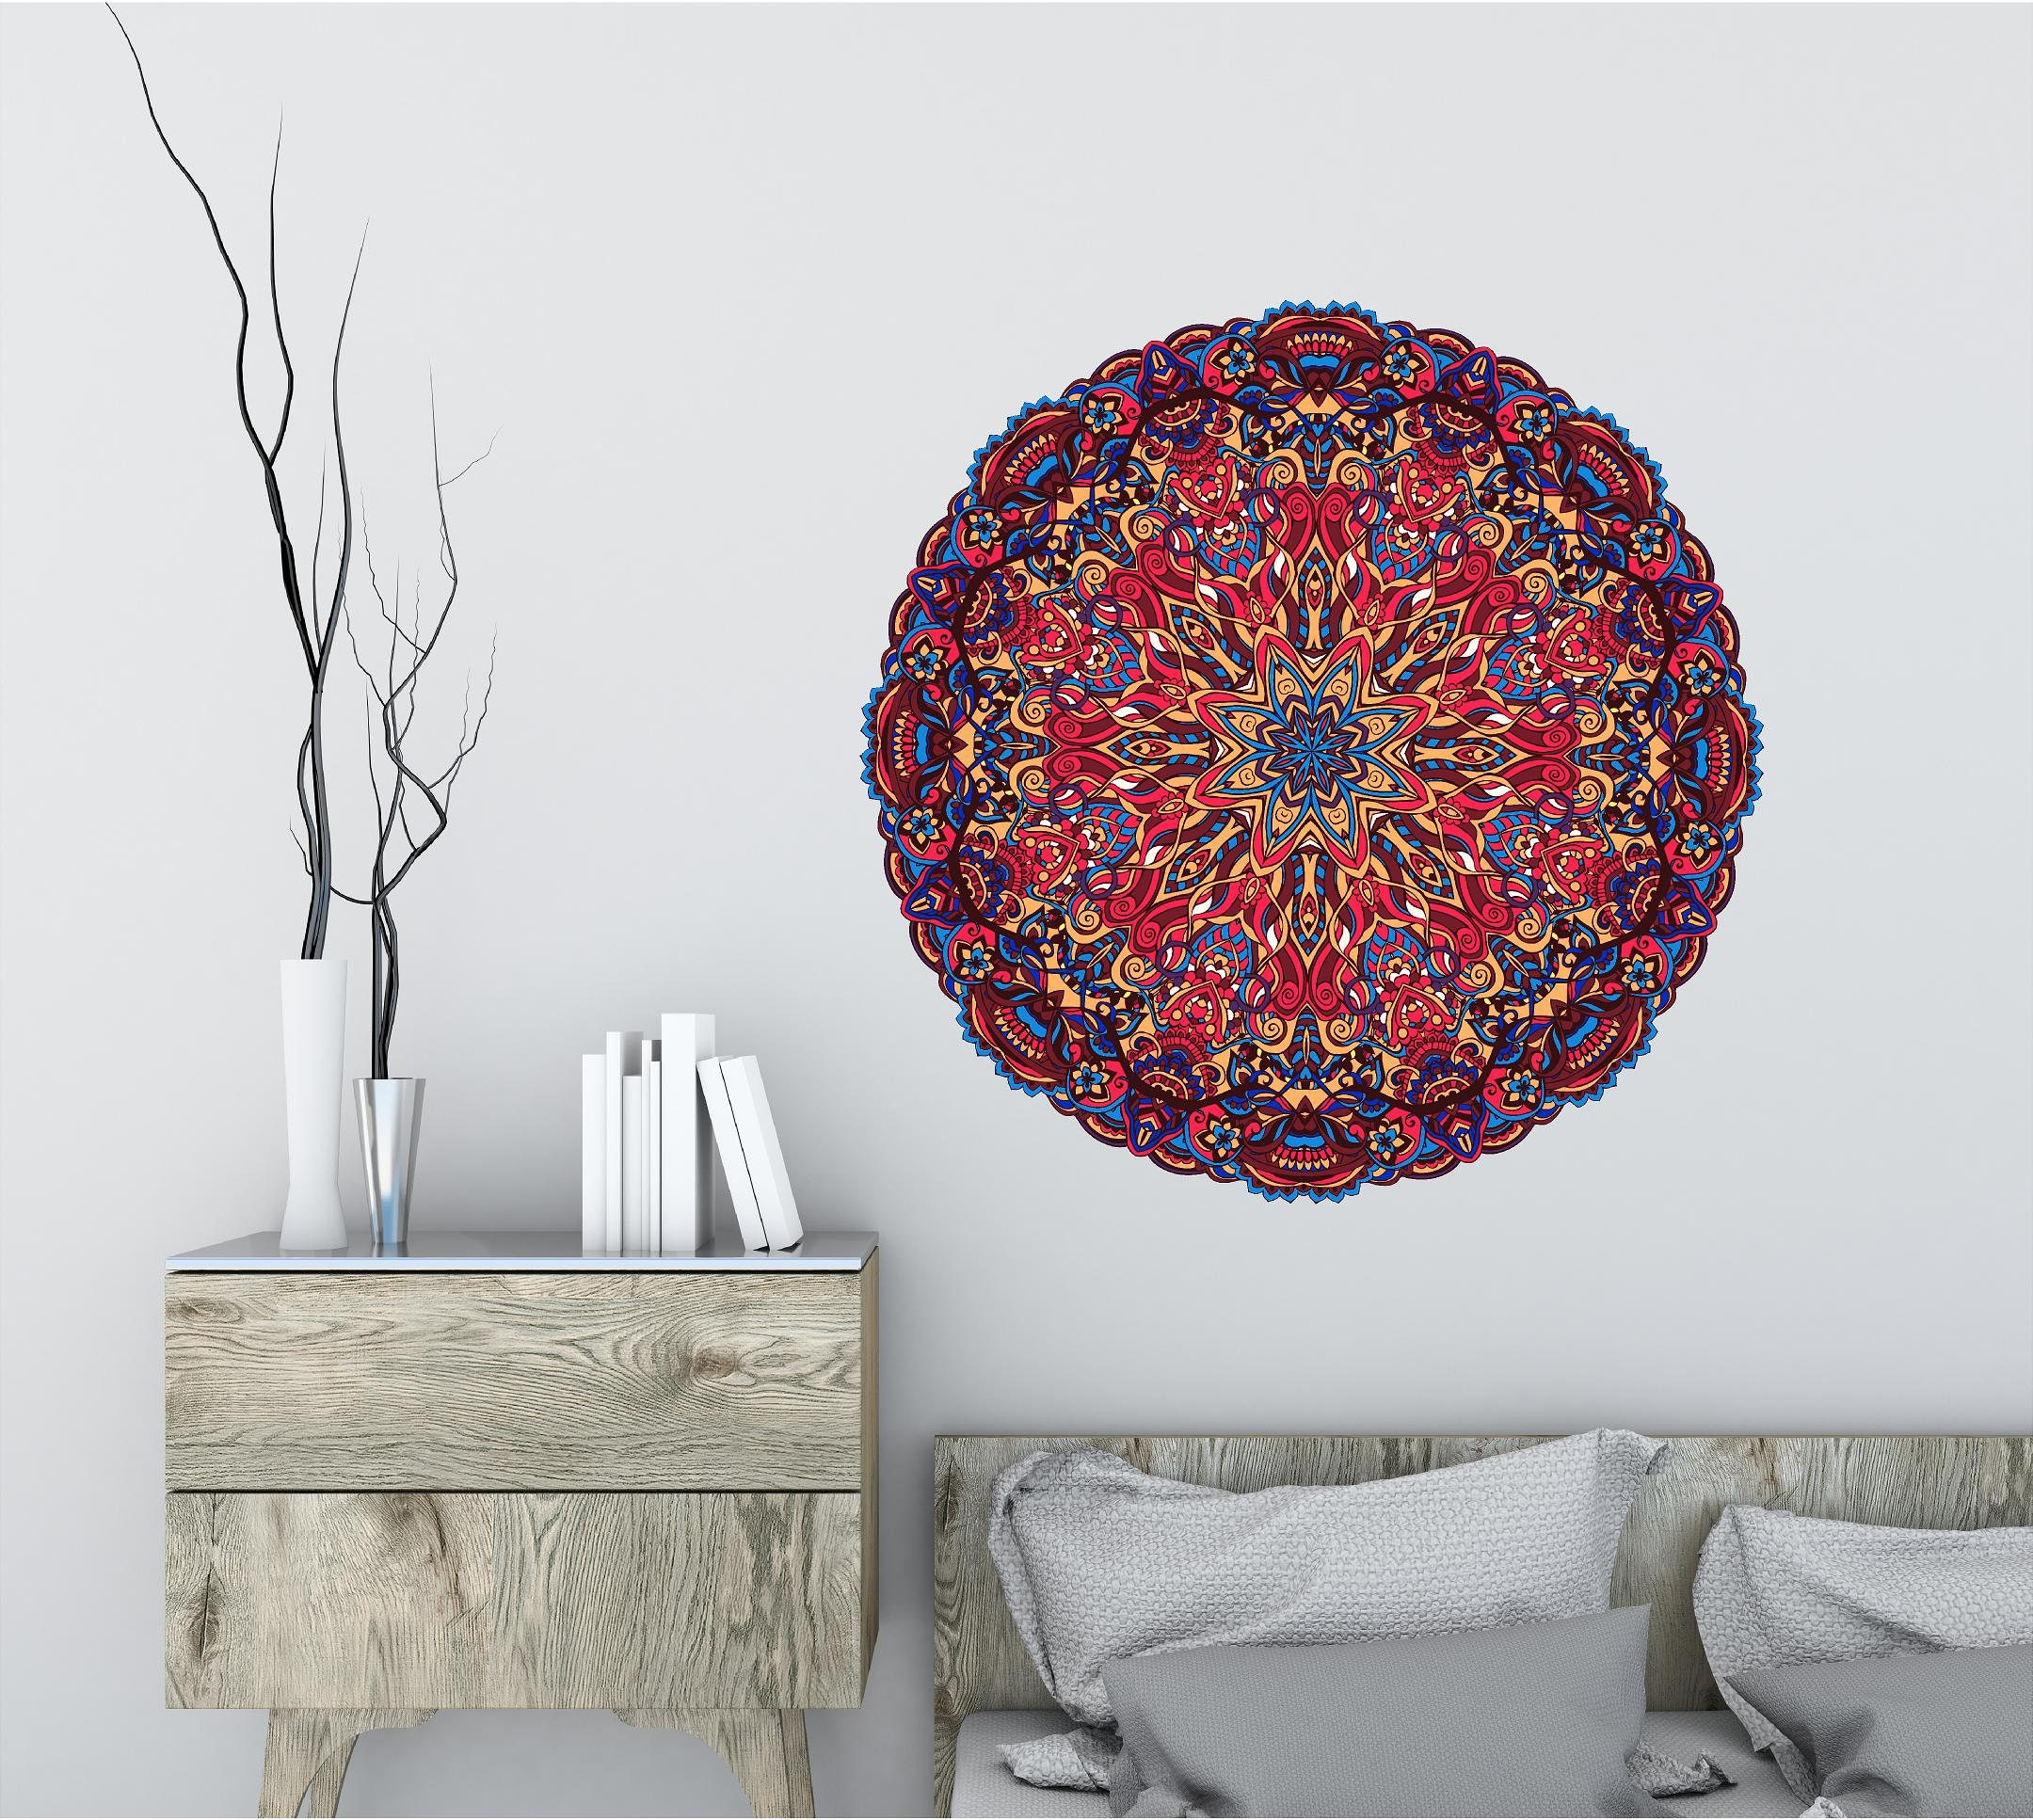 Bohe Mandala Flower Wall Paper Decor Yoga Studio Vinyl: Mandala Wall Decal Yoga Wall Decal Yoga Wall Art